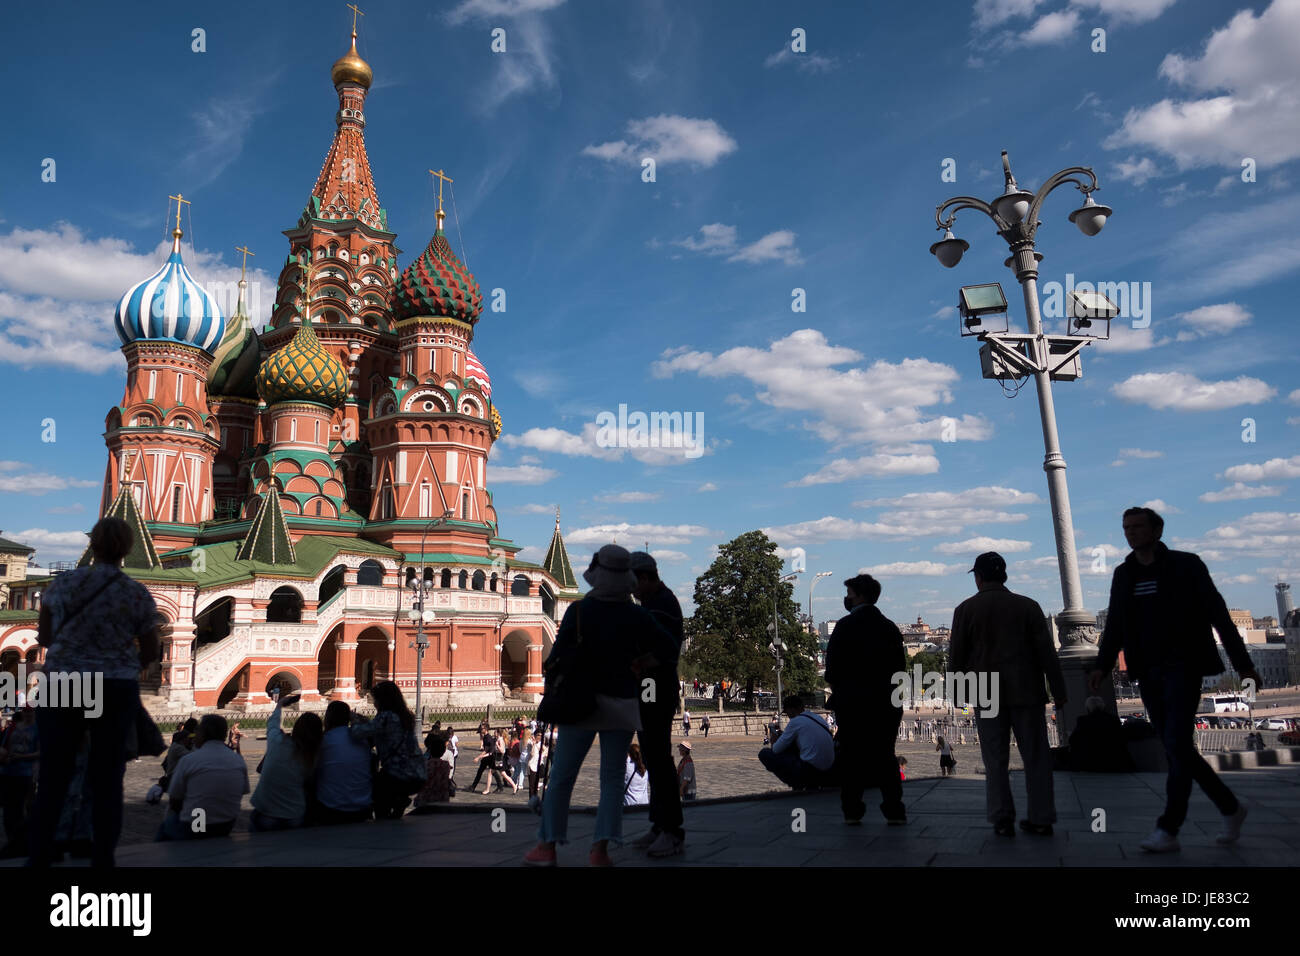 Saint Basil's Cathedral under a blue sky in Moscow, Russia, 20 June 2017. Photo: Marius Becker/dpa Stock Photo